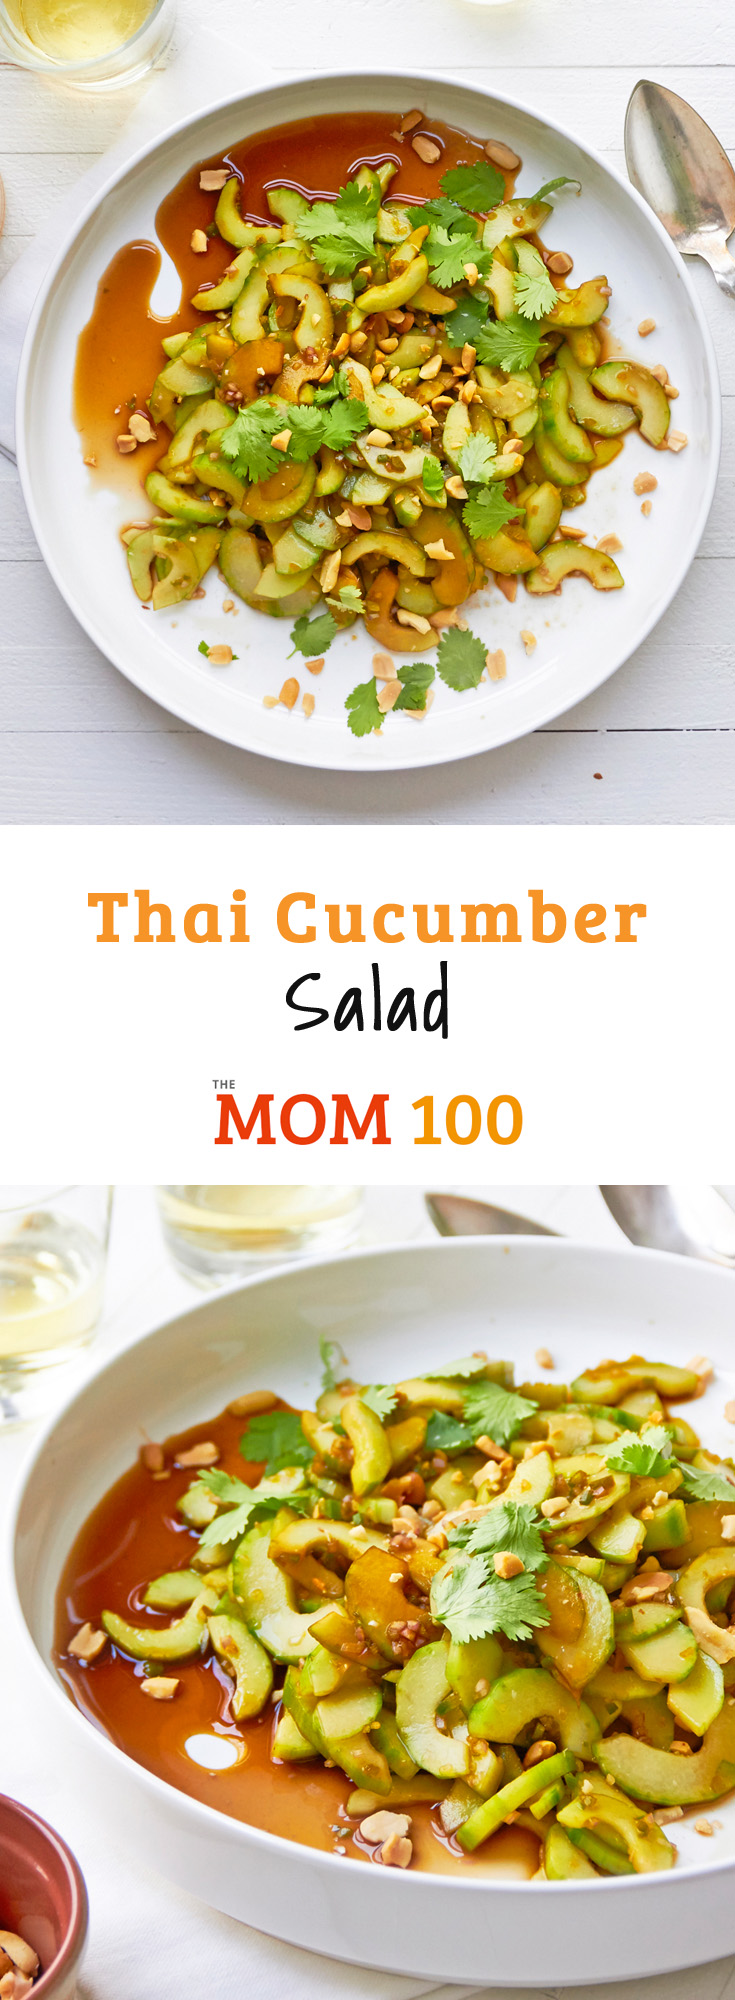 This simple Thai Cucumber salad features crunchy cucumbers, enhanced with just a bit of citrus, soy sauce and a few other Thai ingredients.